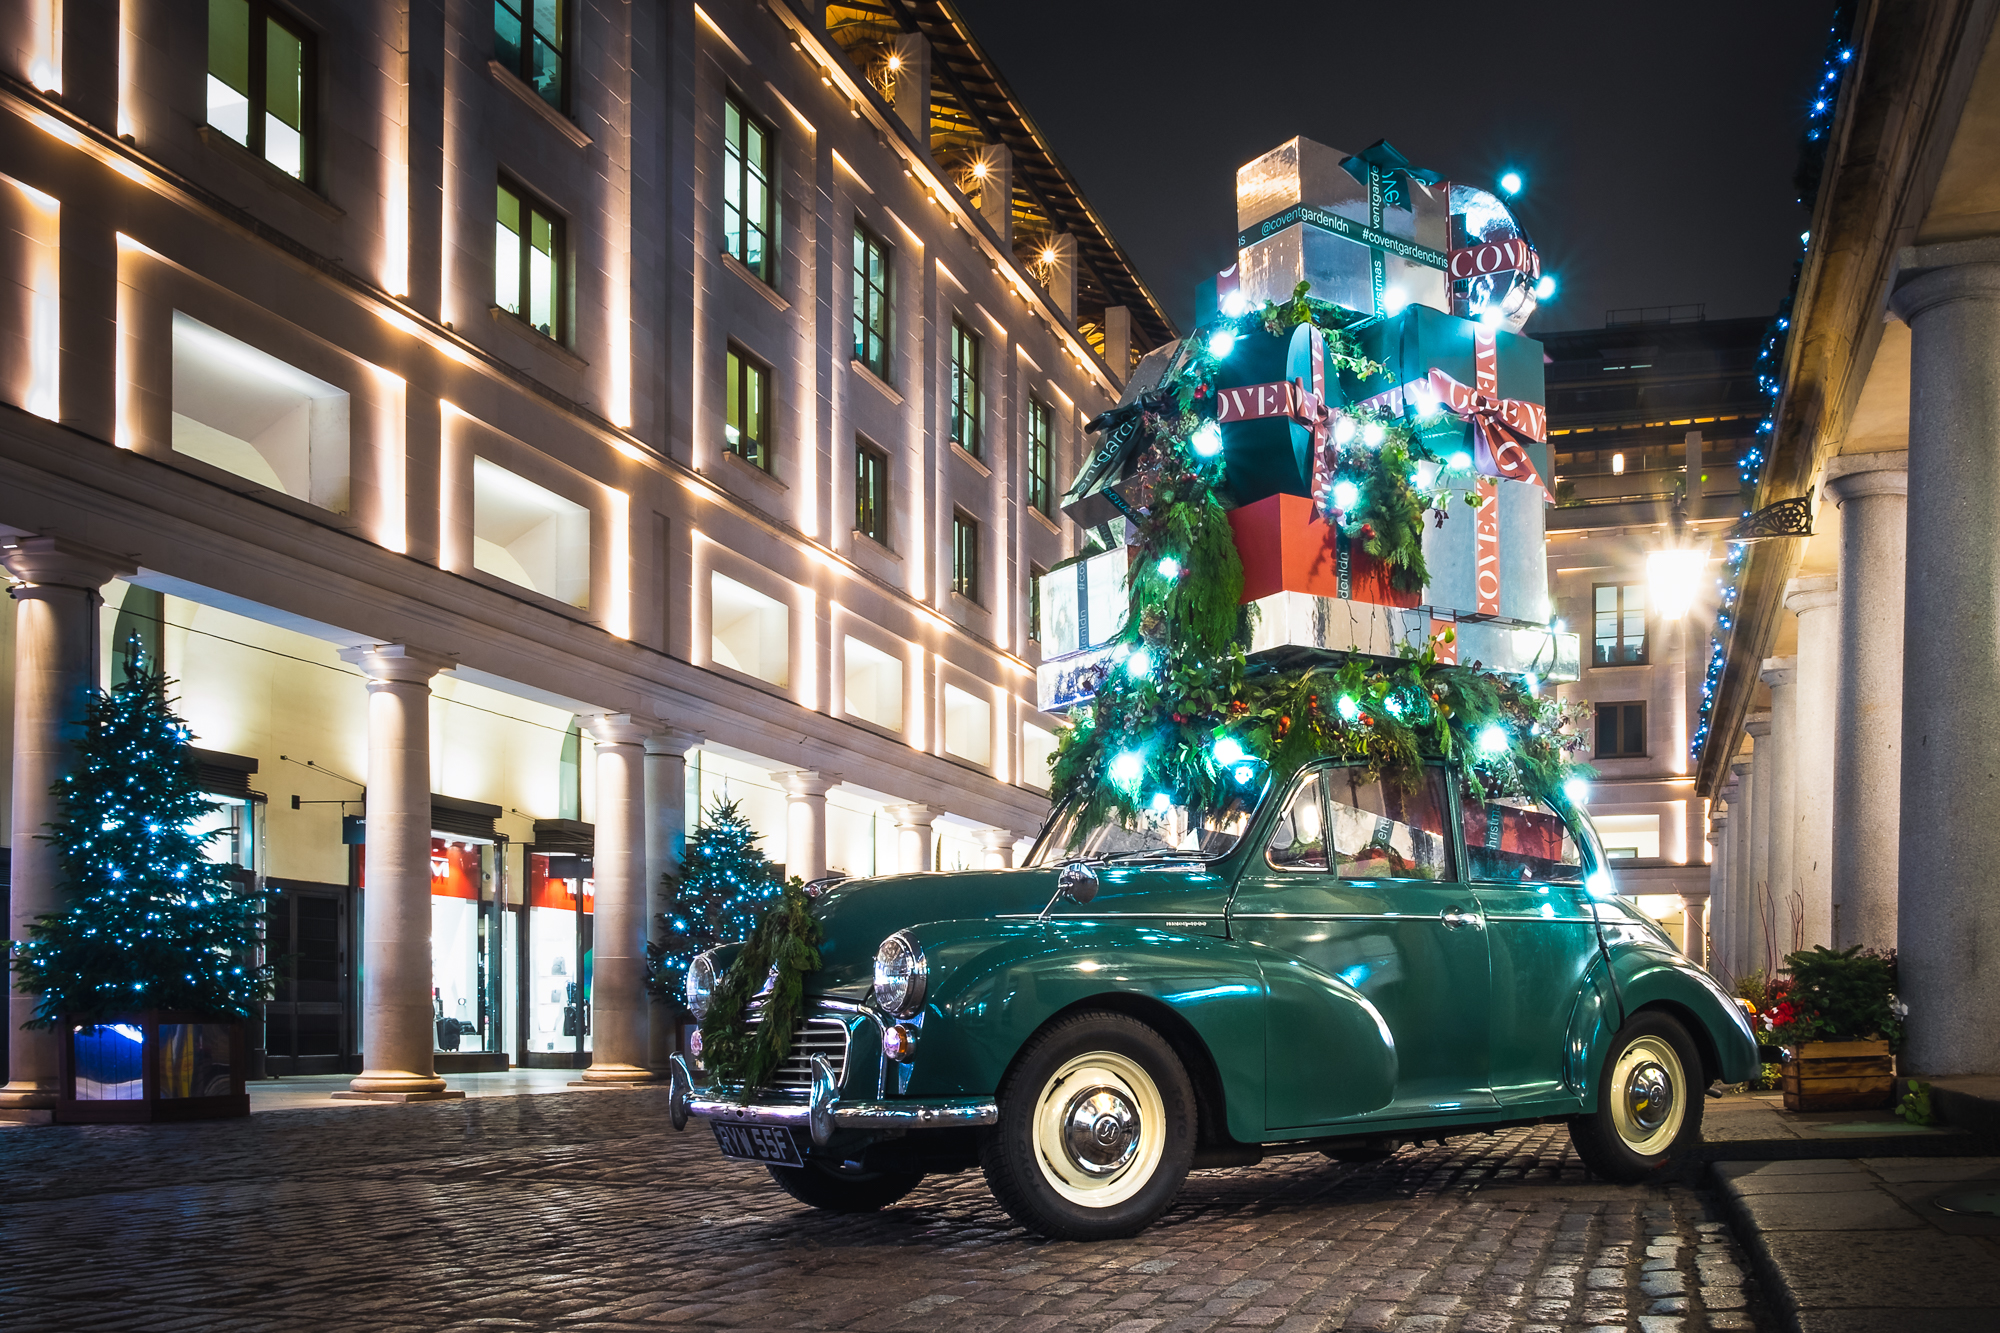 A photo of a Morris Minor car in Covent Garden London taken by Trevor Sherwin